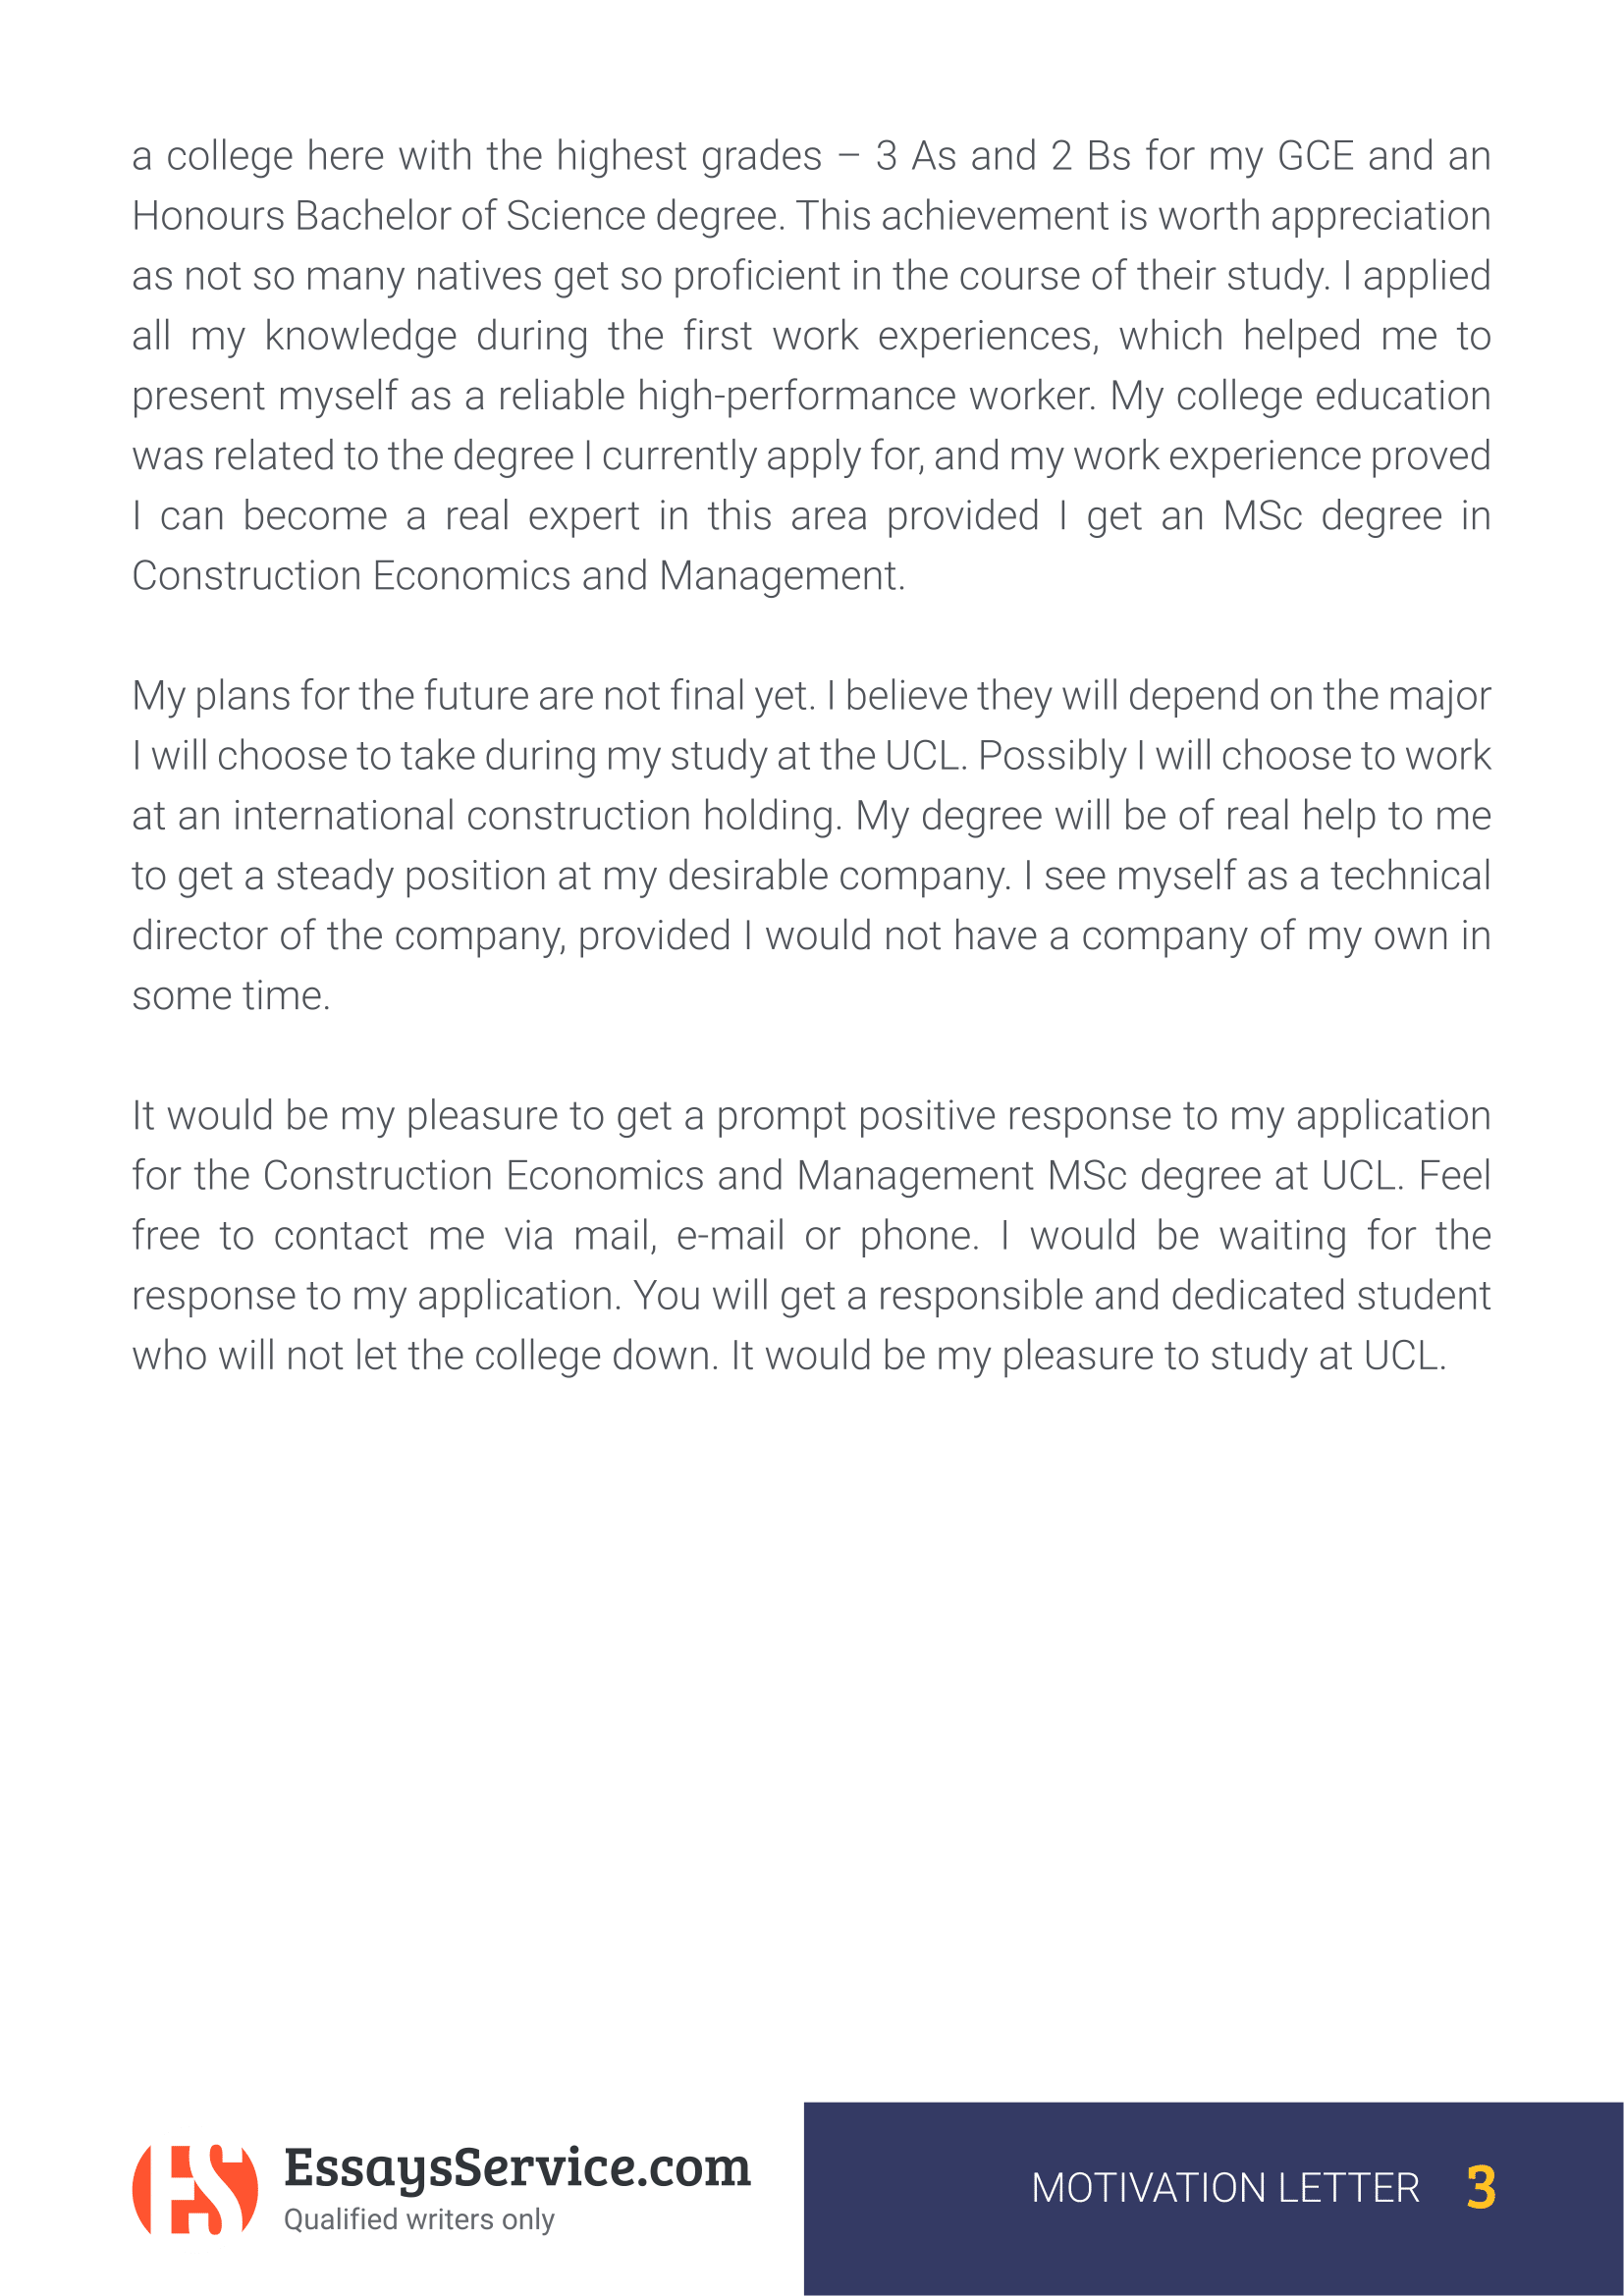 help with motivation letter writing  how to submit a